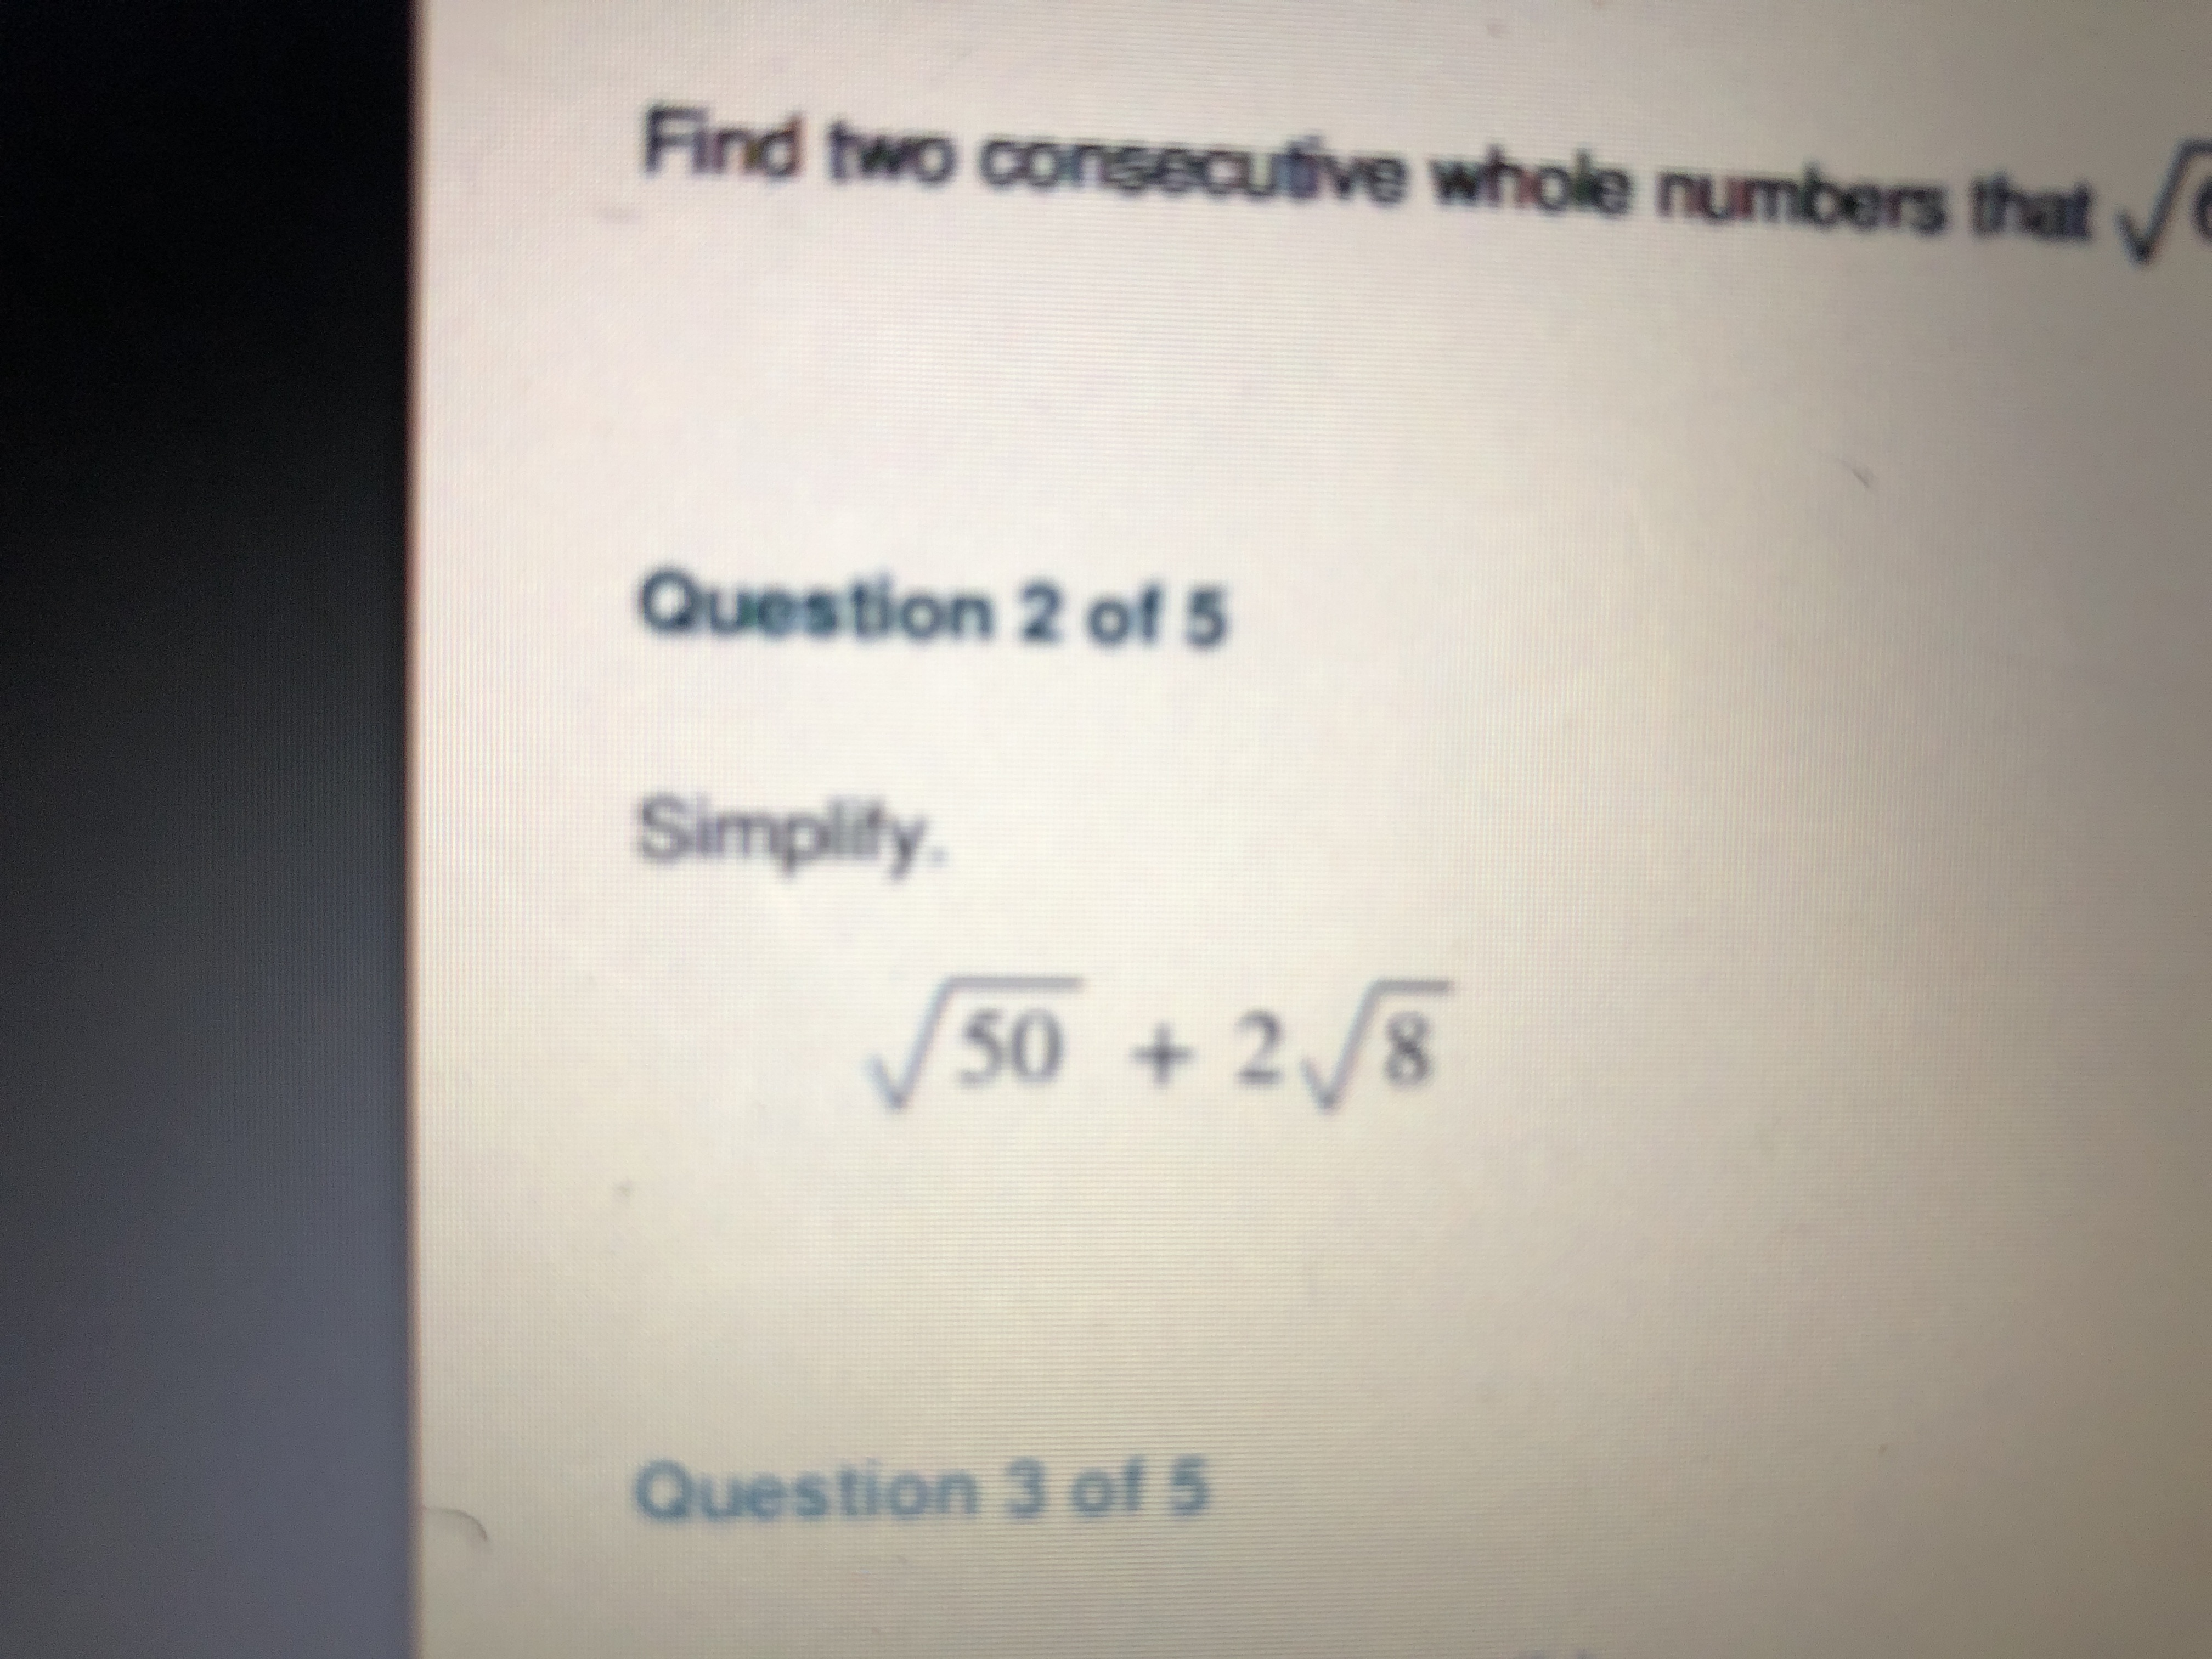 Find two consecutive whole numbers that Question 2 of 5 Simplify 50 +2/8 Question 3 of